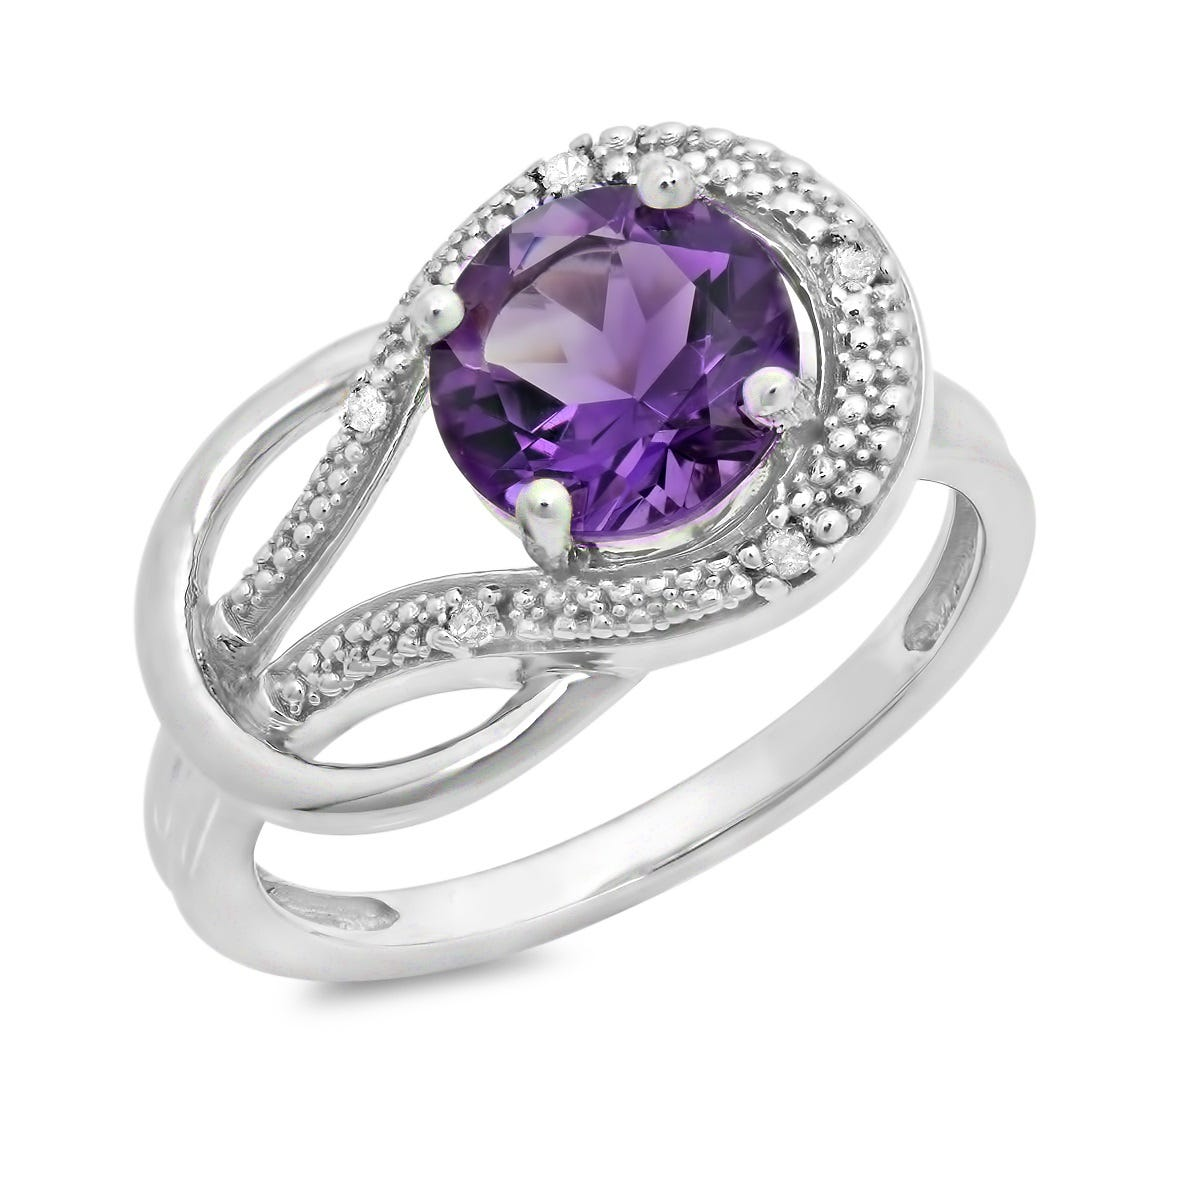 Amethyst & Diamond Love Knot Ring in 10k White Gold